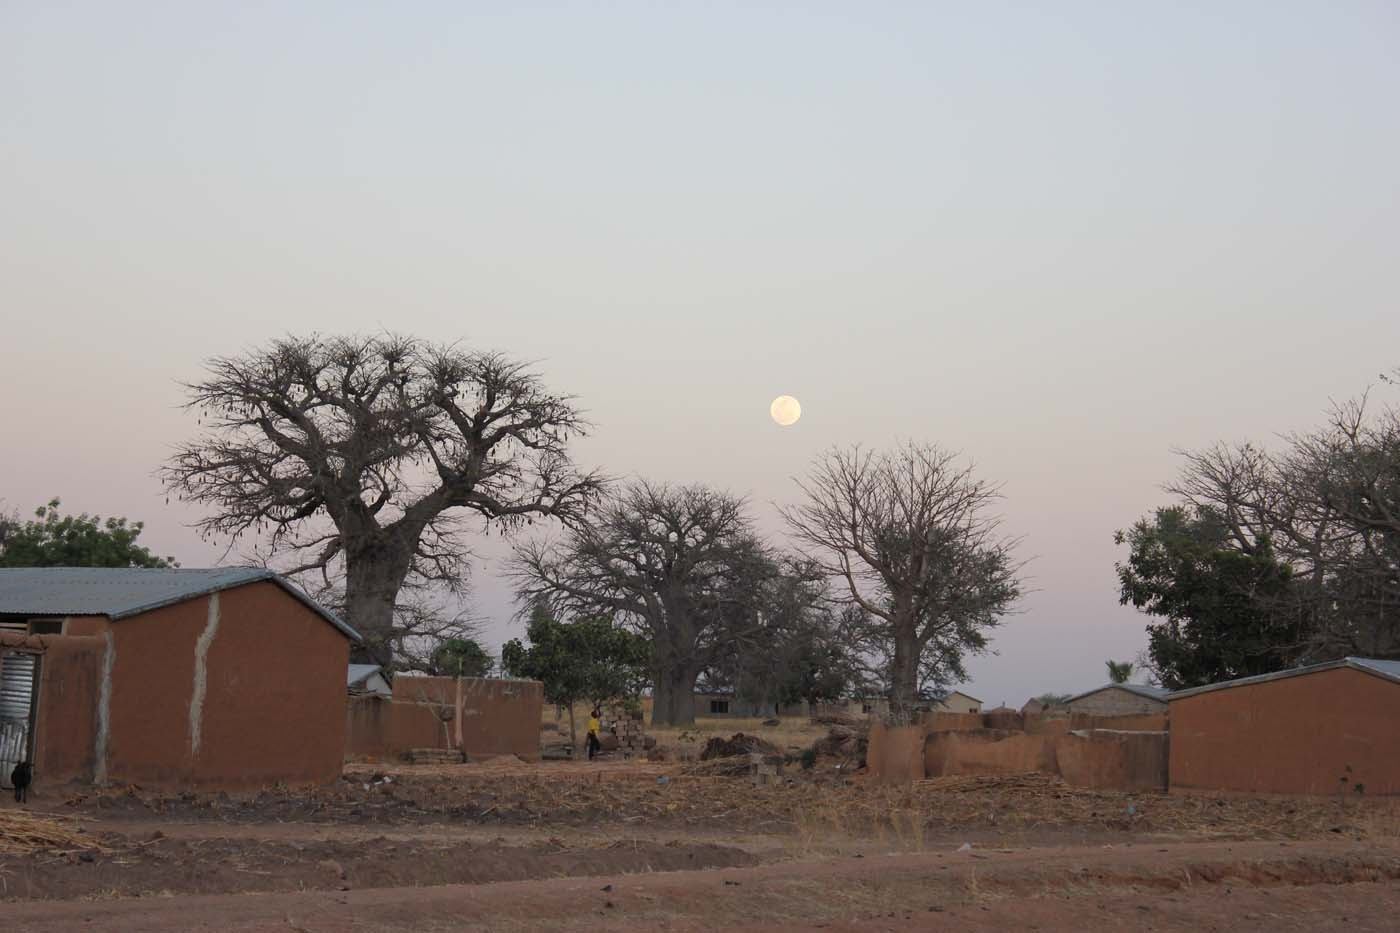 View of the bright moon rising